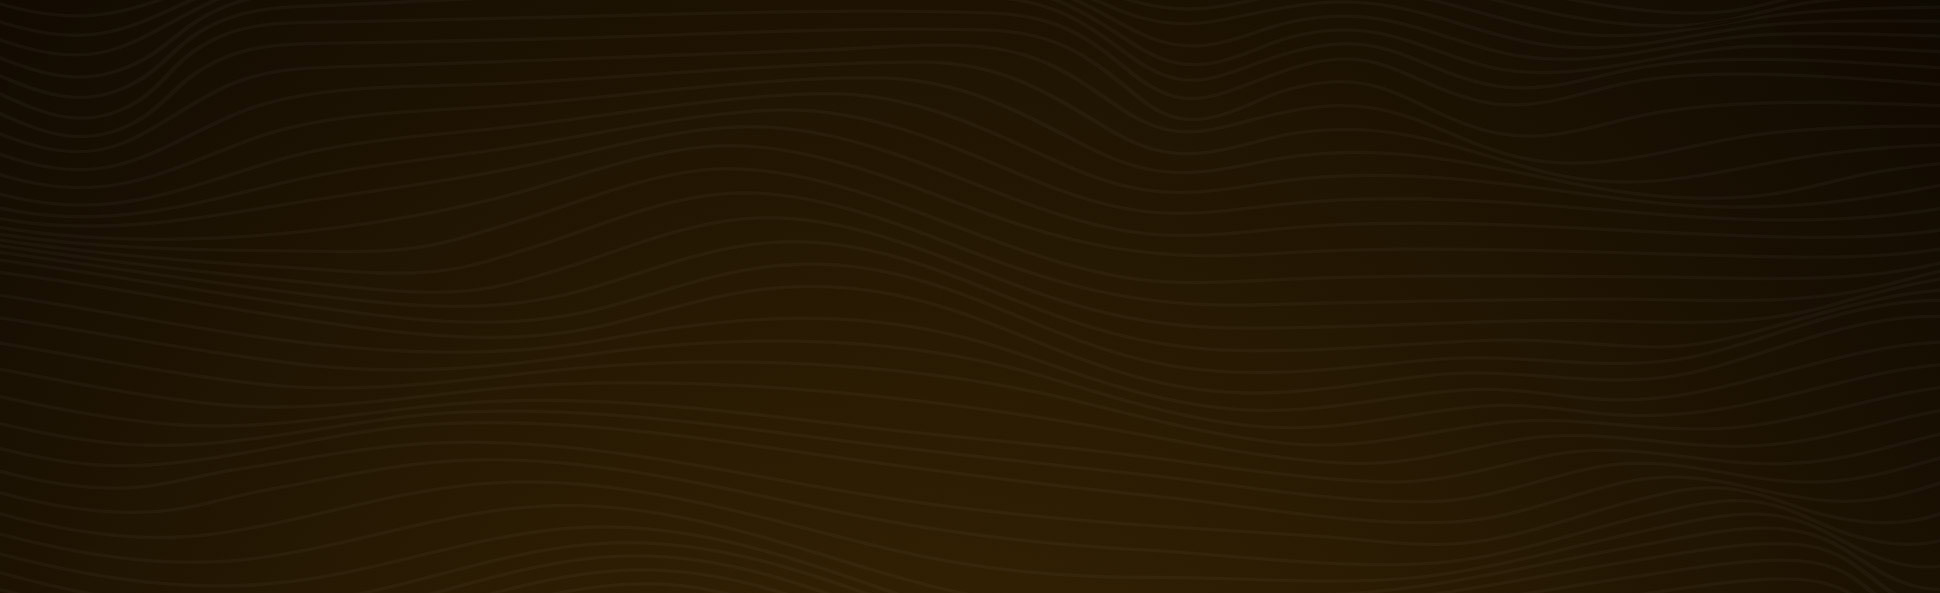 design-background-about